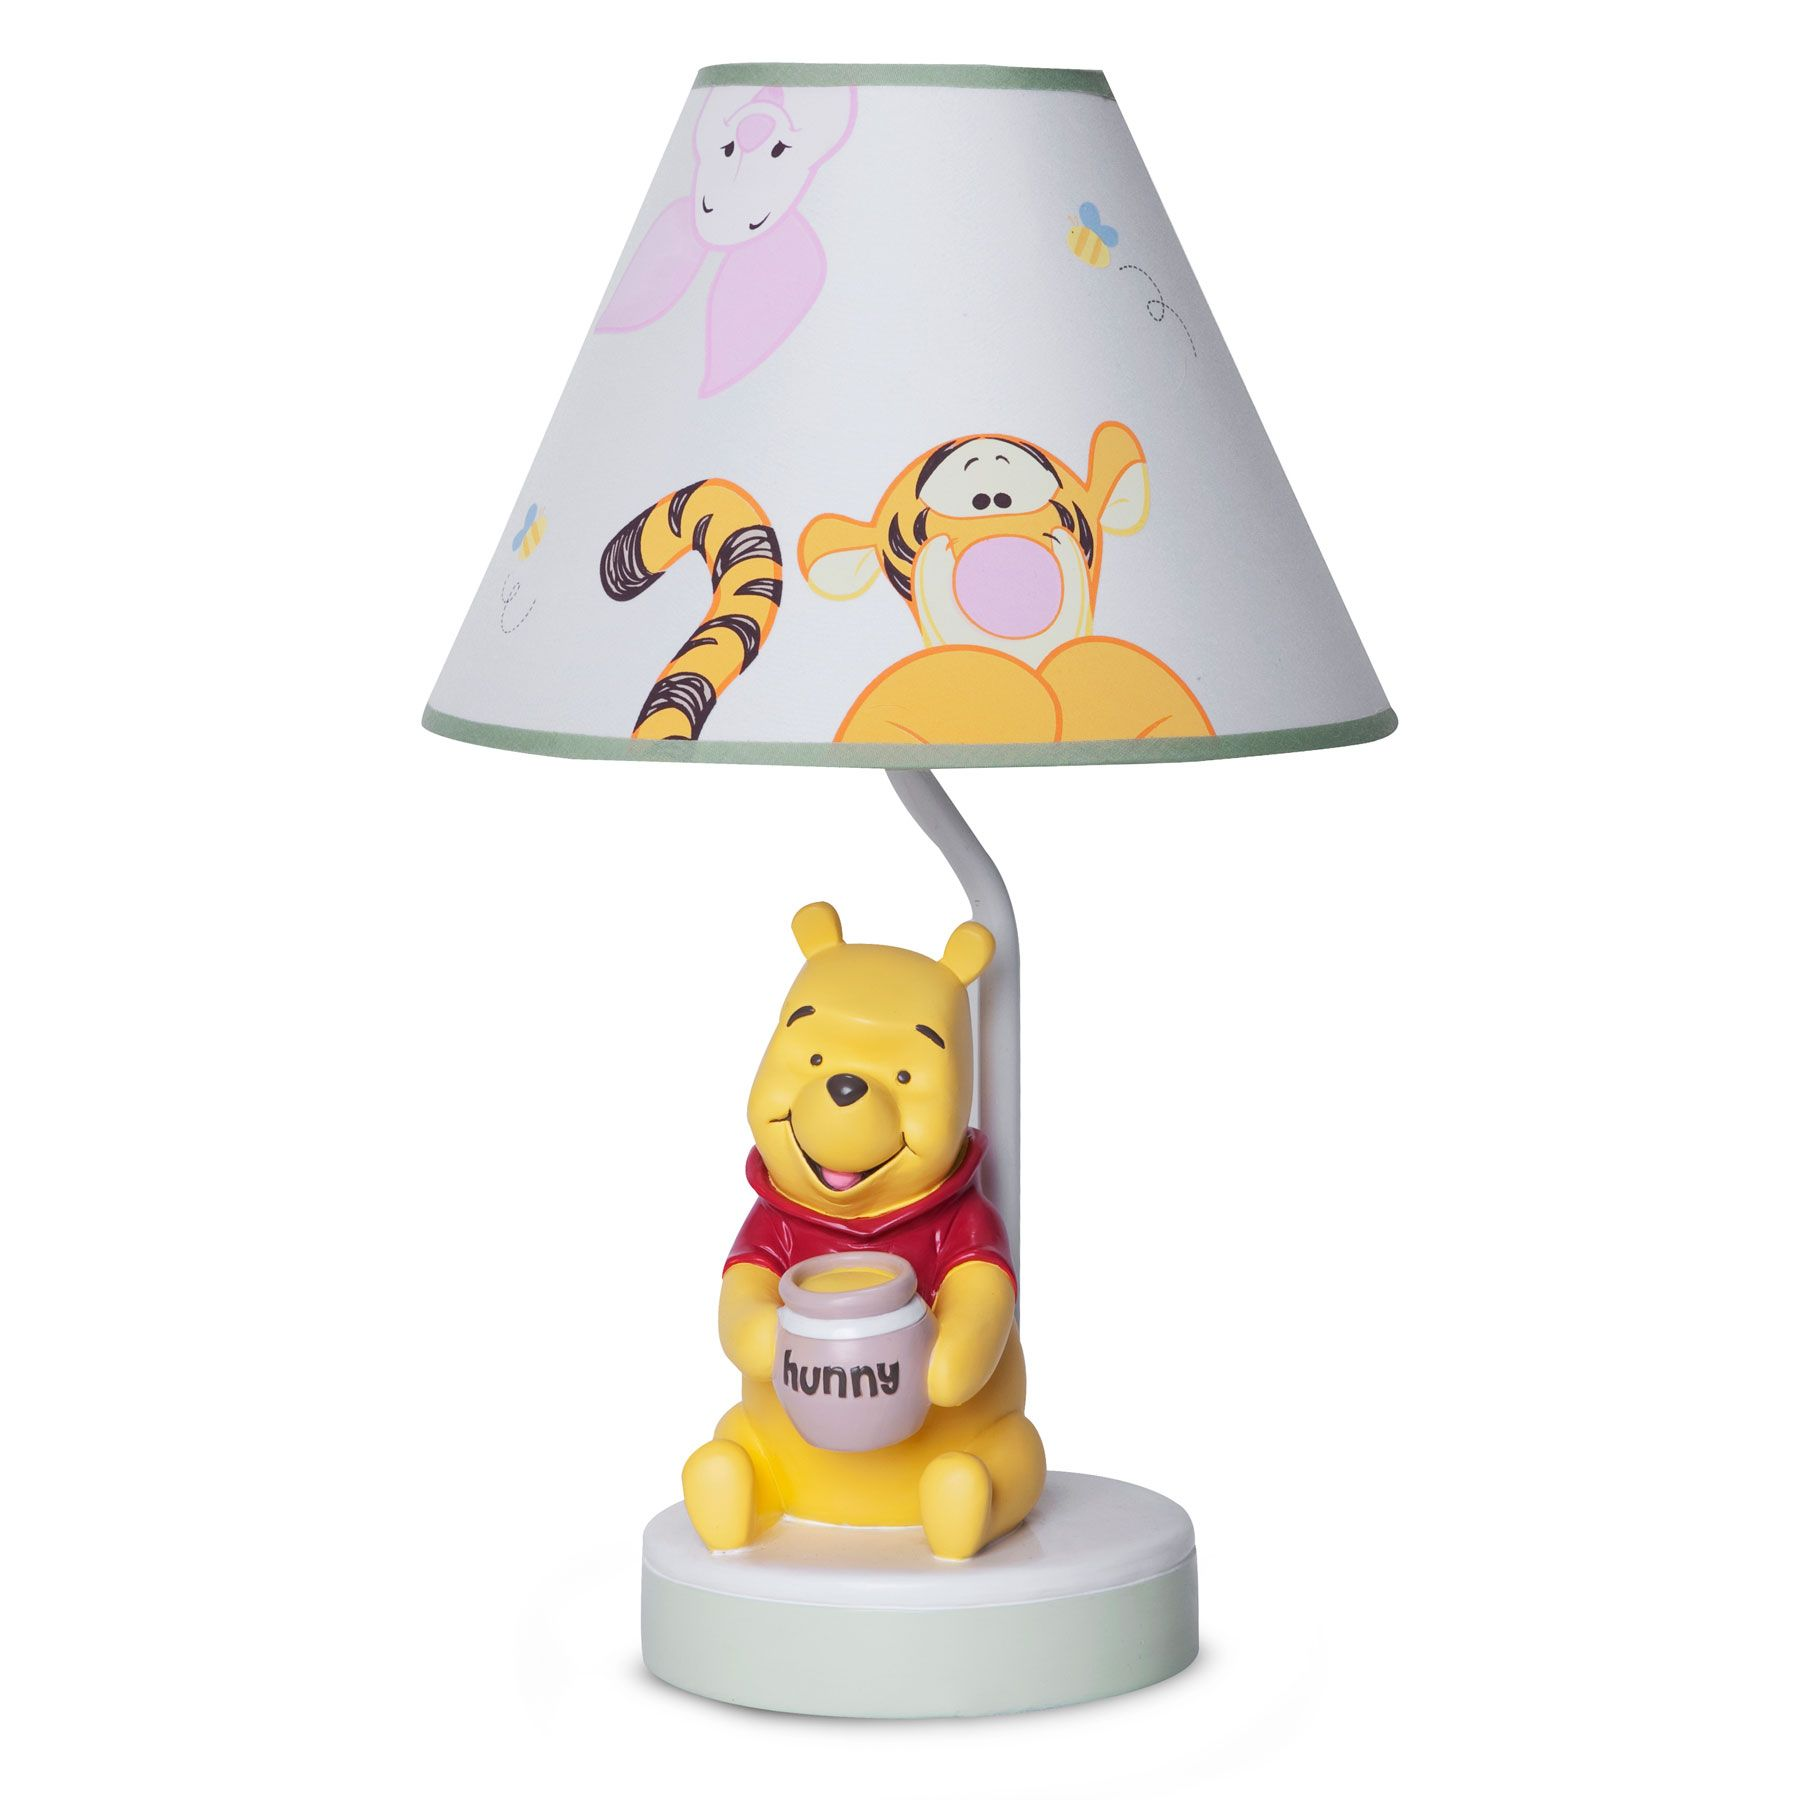 Winnie The Pooh Nursery Lamps Google Search Baby 2